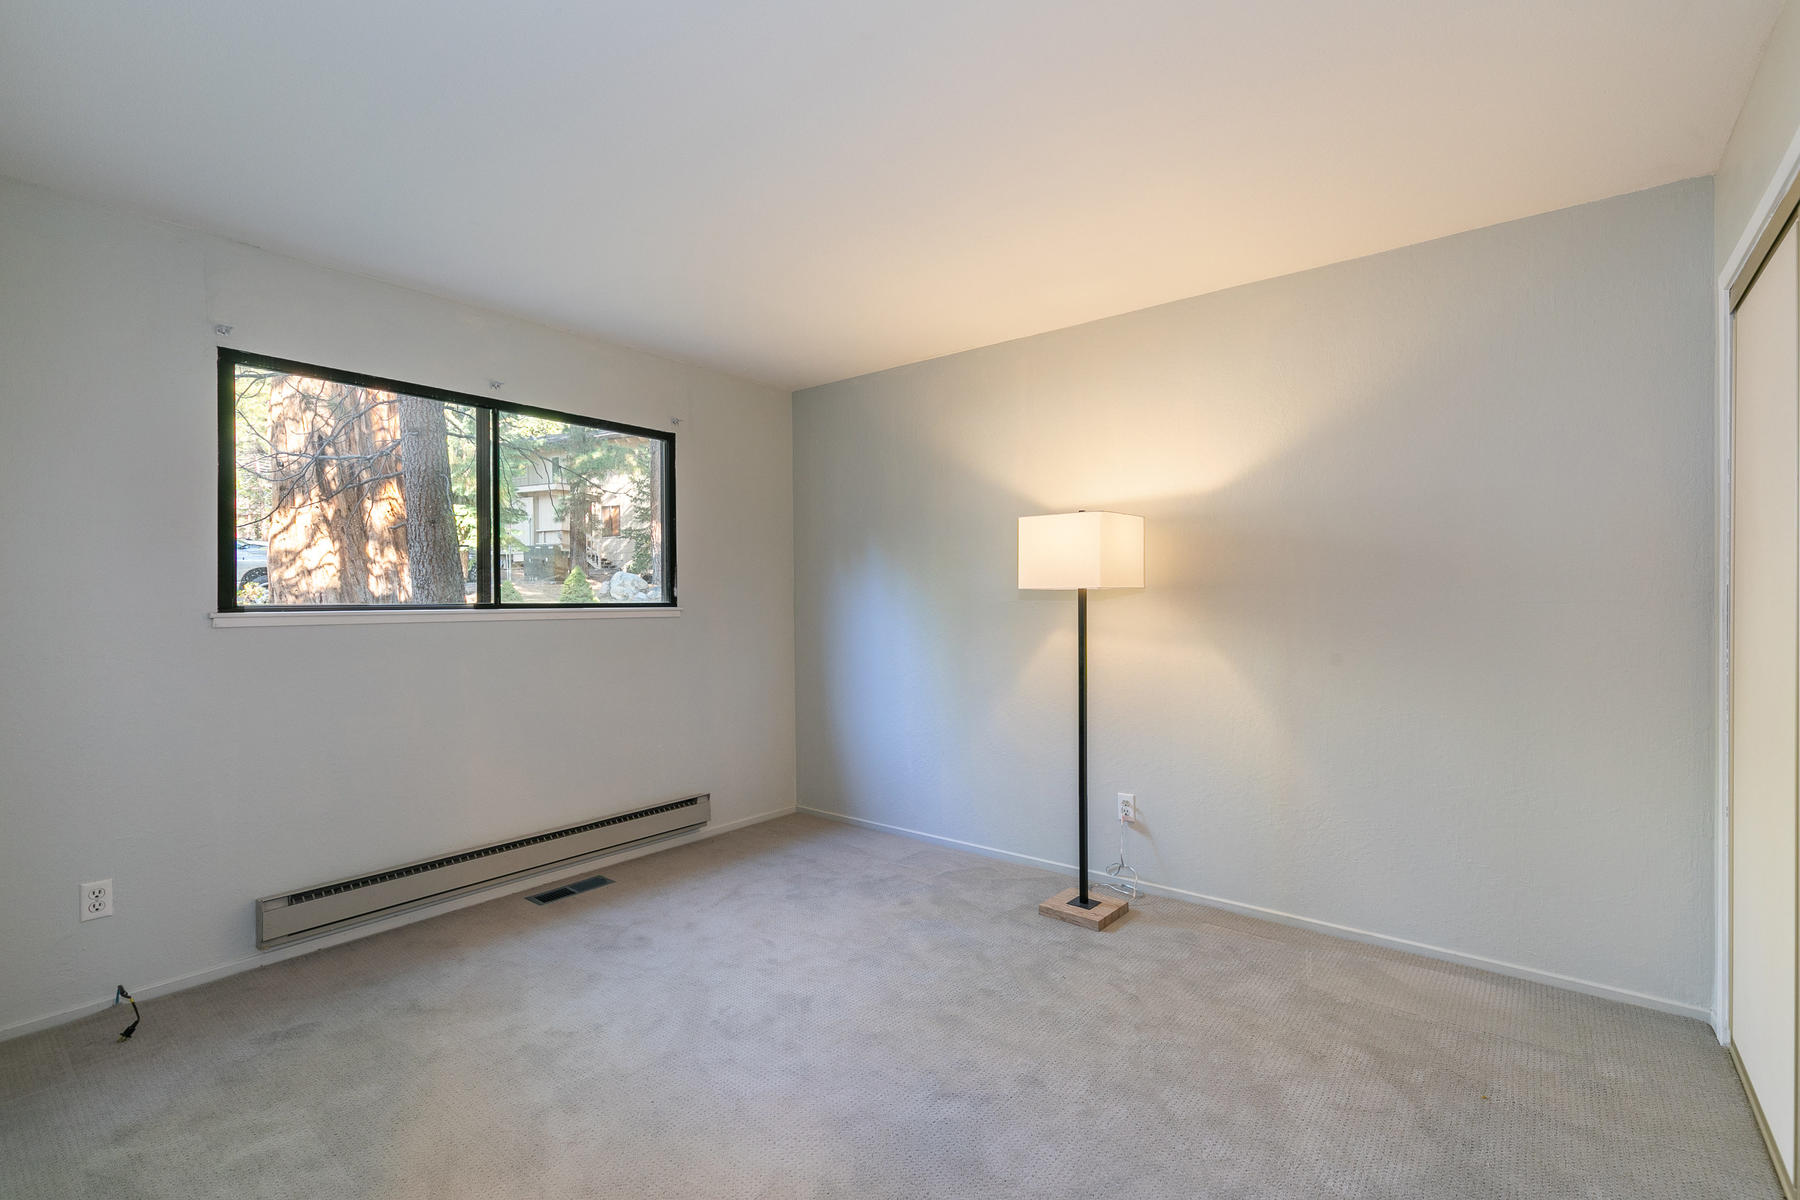 Additional photo for property listing at 321 Ski Way #210, Incline Village, NV 89451 321 Ski Way #210 Incline Village, 内华达州 89451 美国